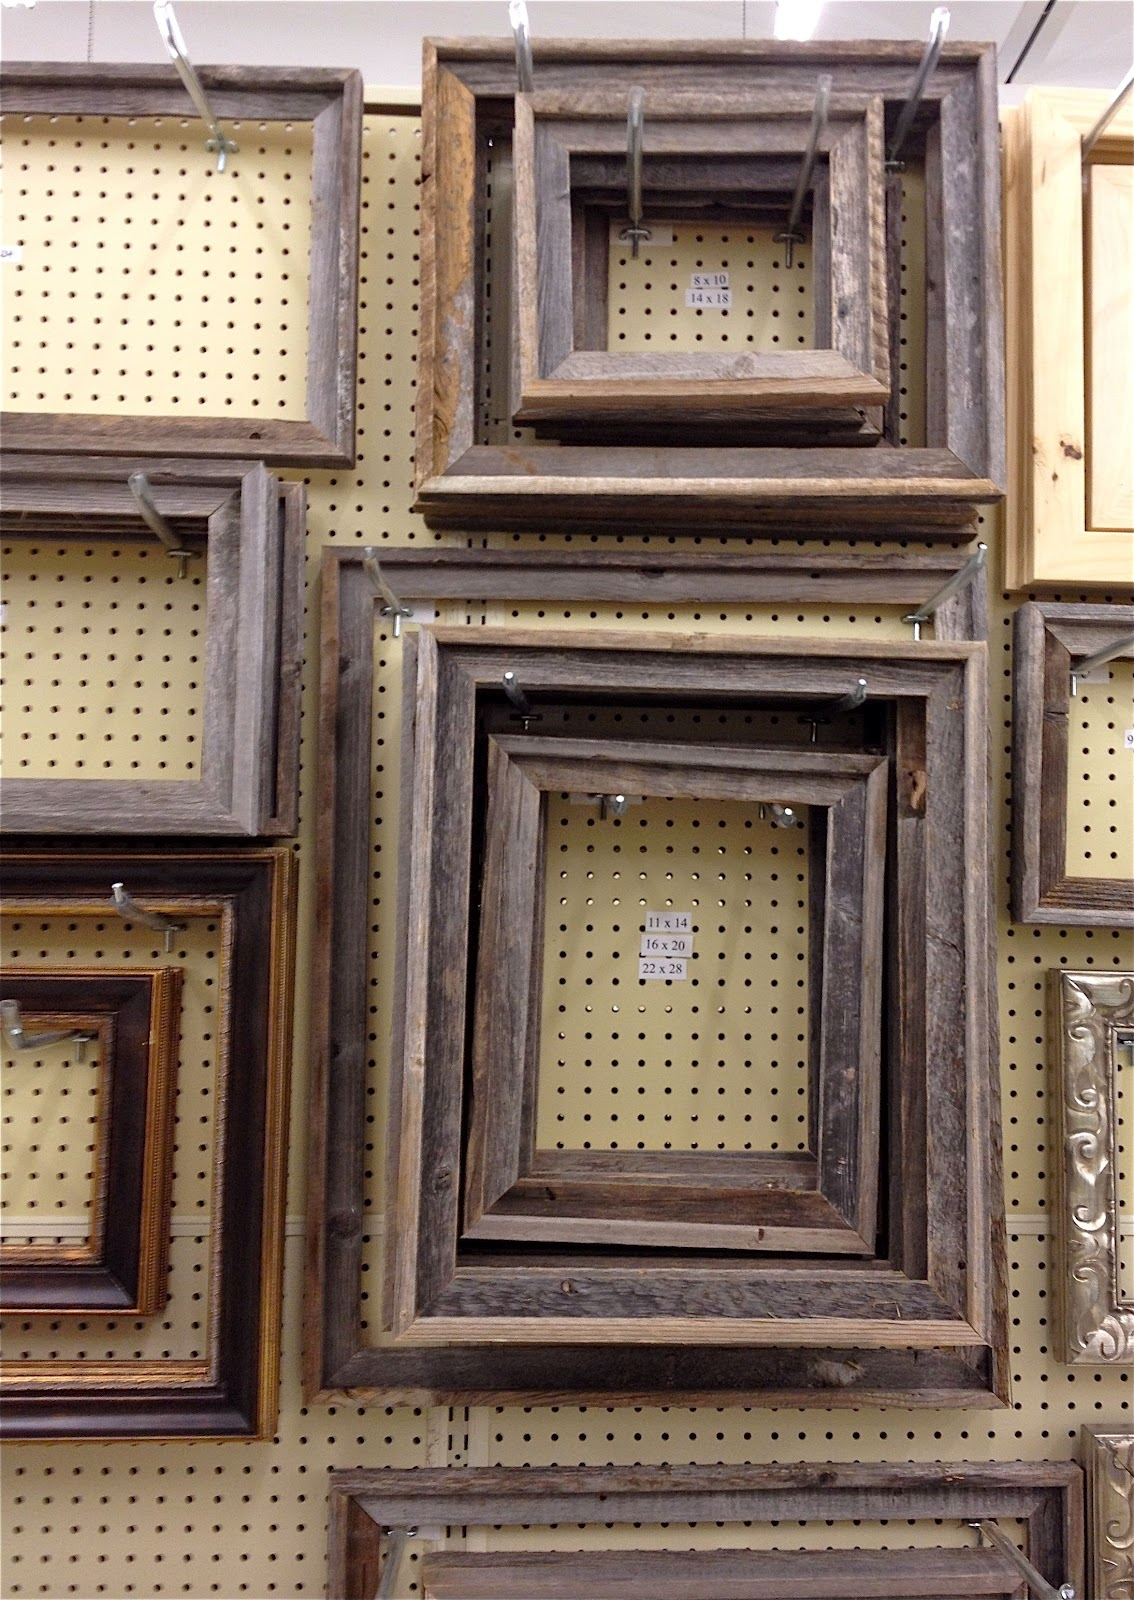 heres a close up with a sneak peek preview of one of my bulletin boards to show you the reclaimed wood look of the frames complete with old nail holes